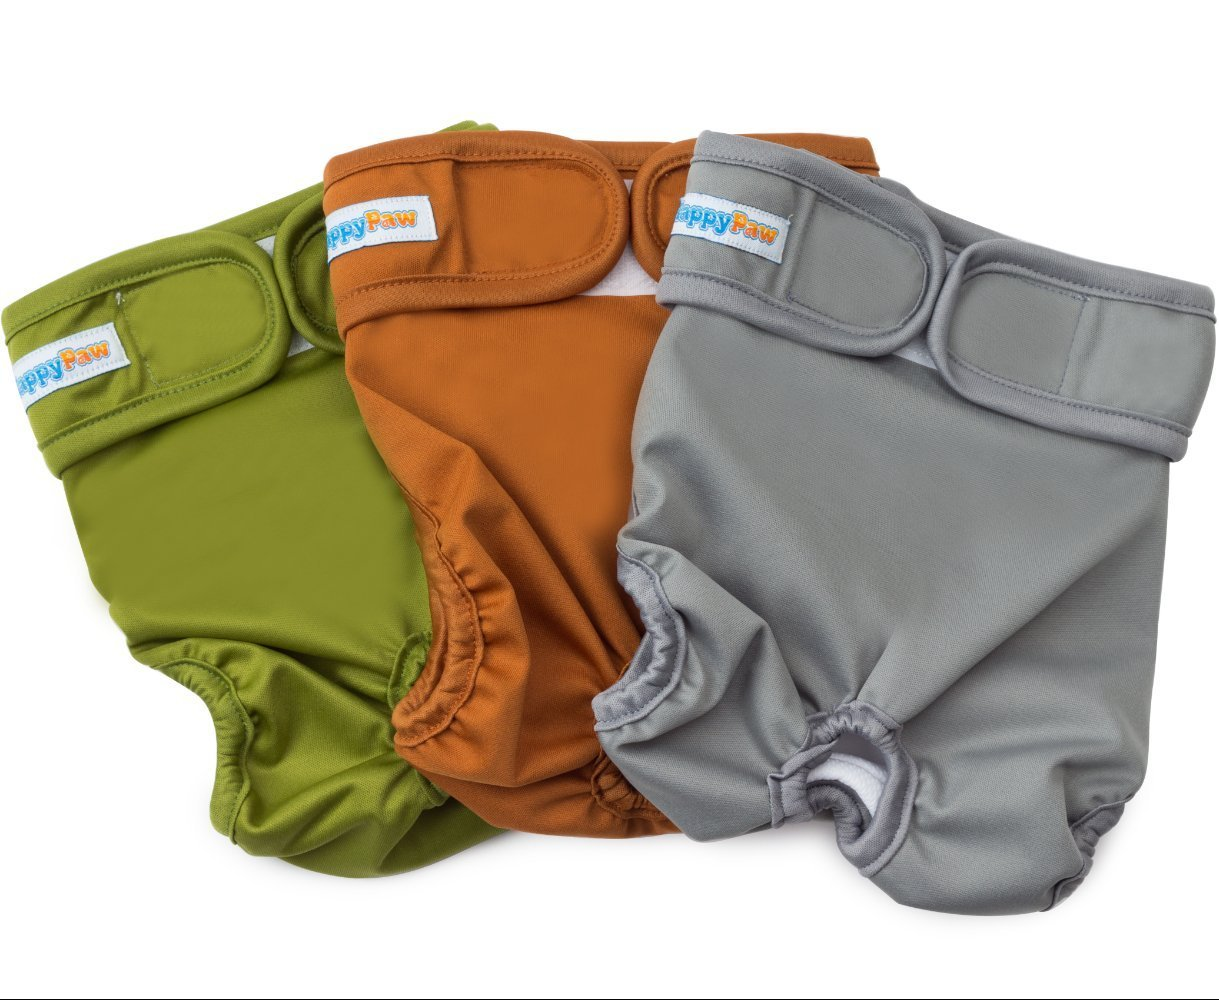 washable and reusable dog diapers